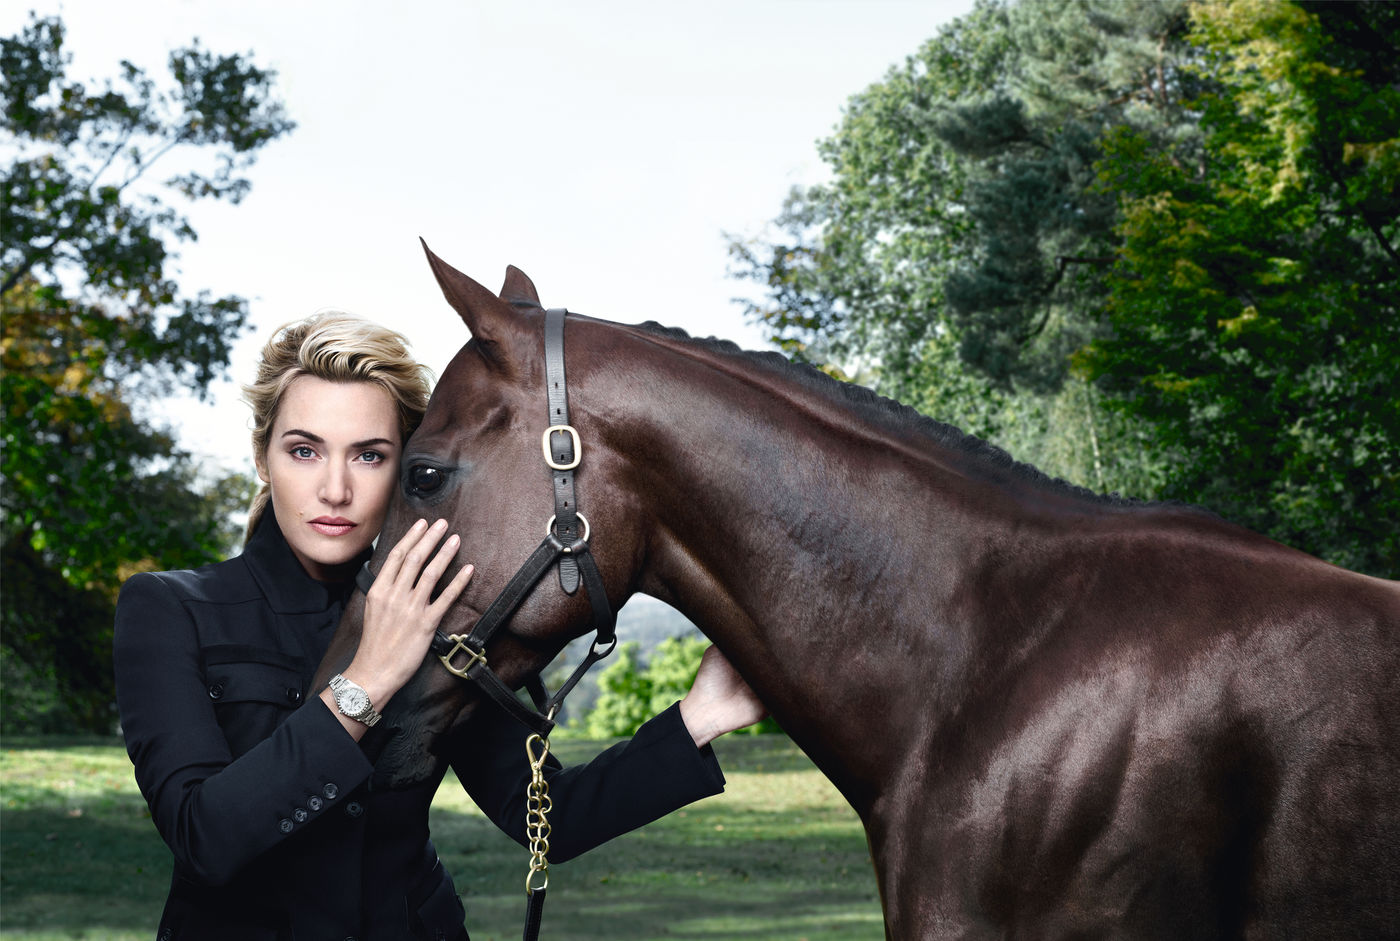 Longines Flat Racing Event: The Prix de Diane Longines – An Unmissable Event of Elegance 4